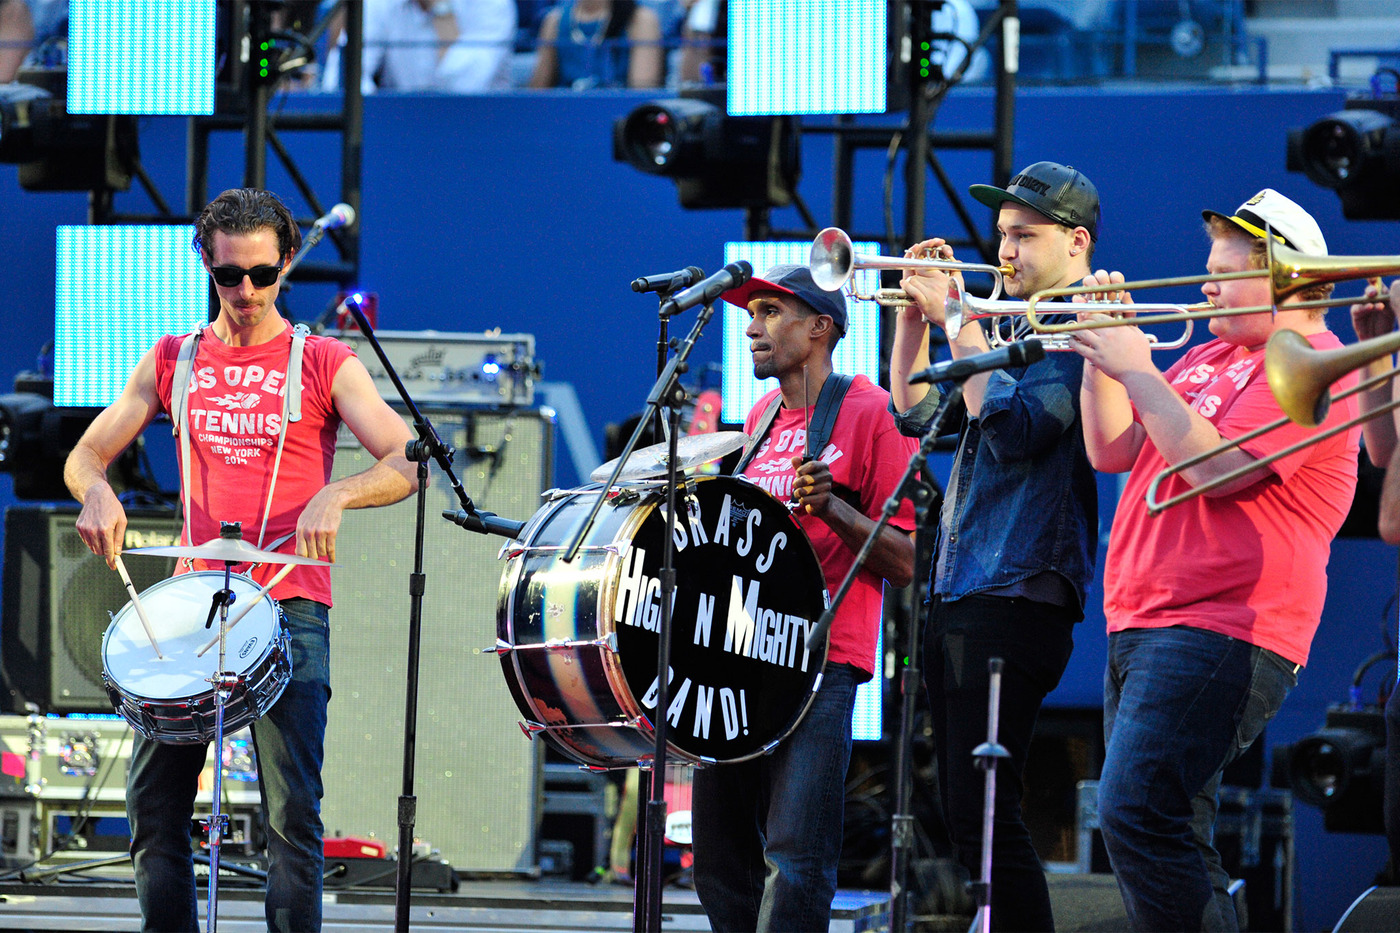 The High and Mighty Brass Band! performs during the Opening Ceremony on Arthur Ashe Stadium. - Photo Credit: Andrew Ong/usopen.org